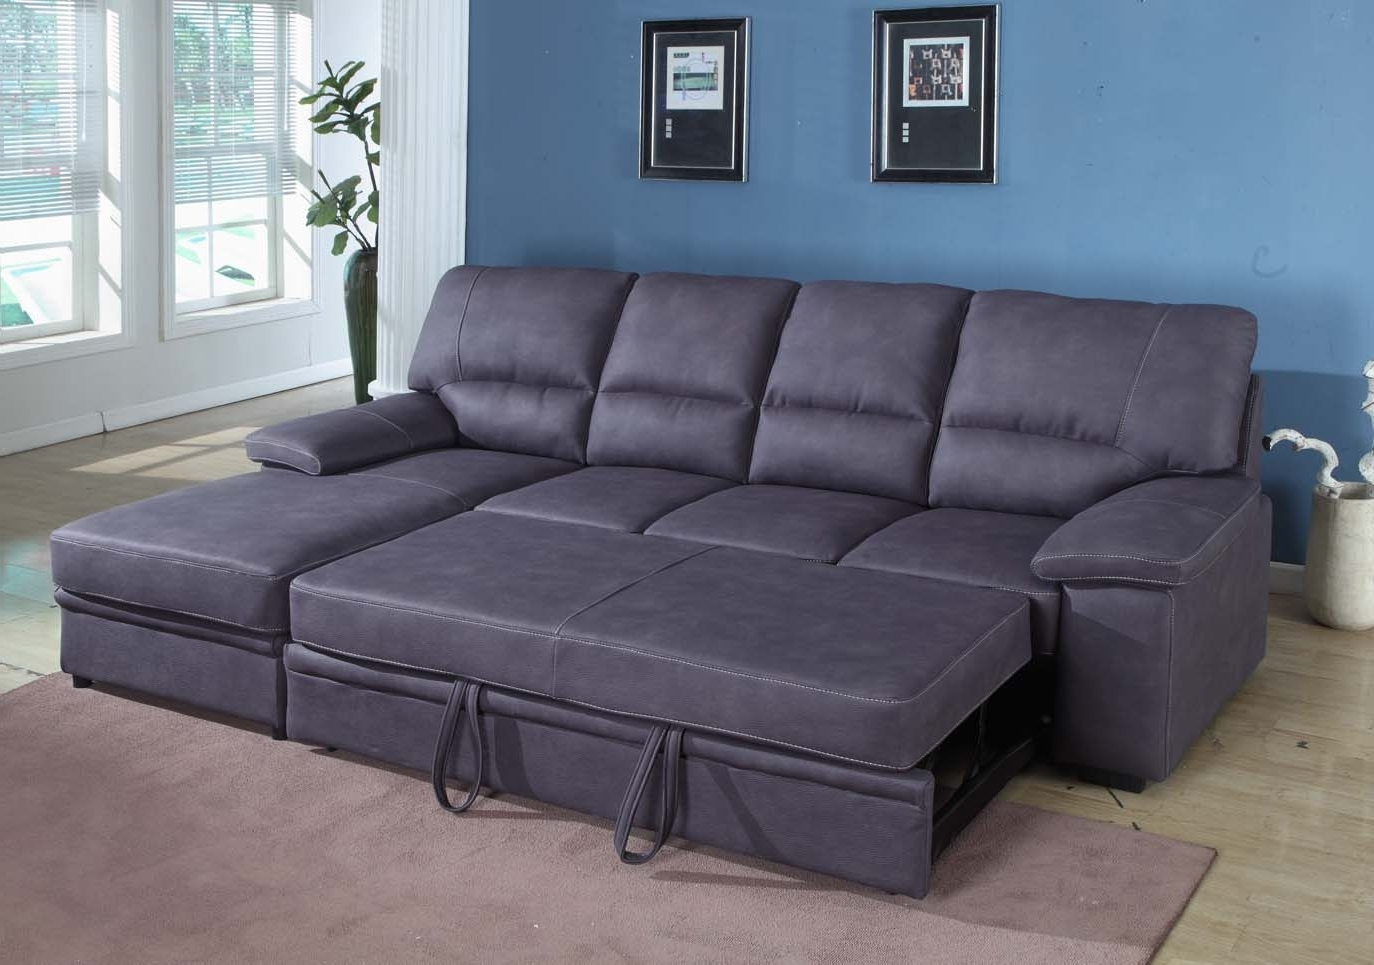 Grey Sleeper Sectional Sofa (View 5 of 15)